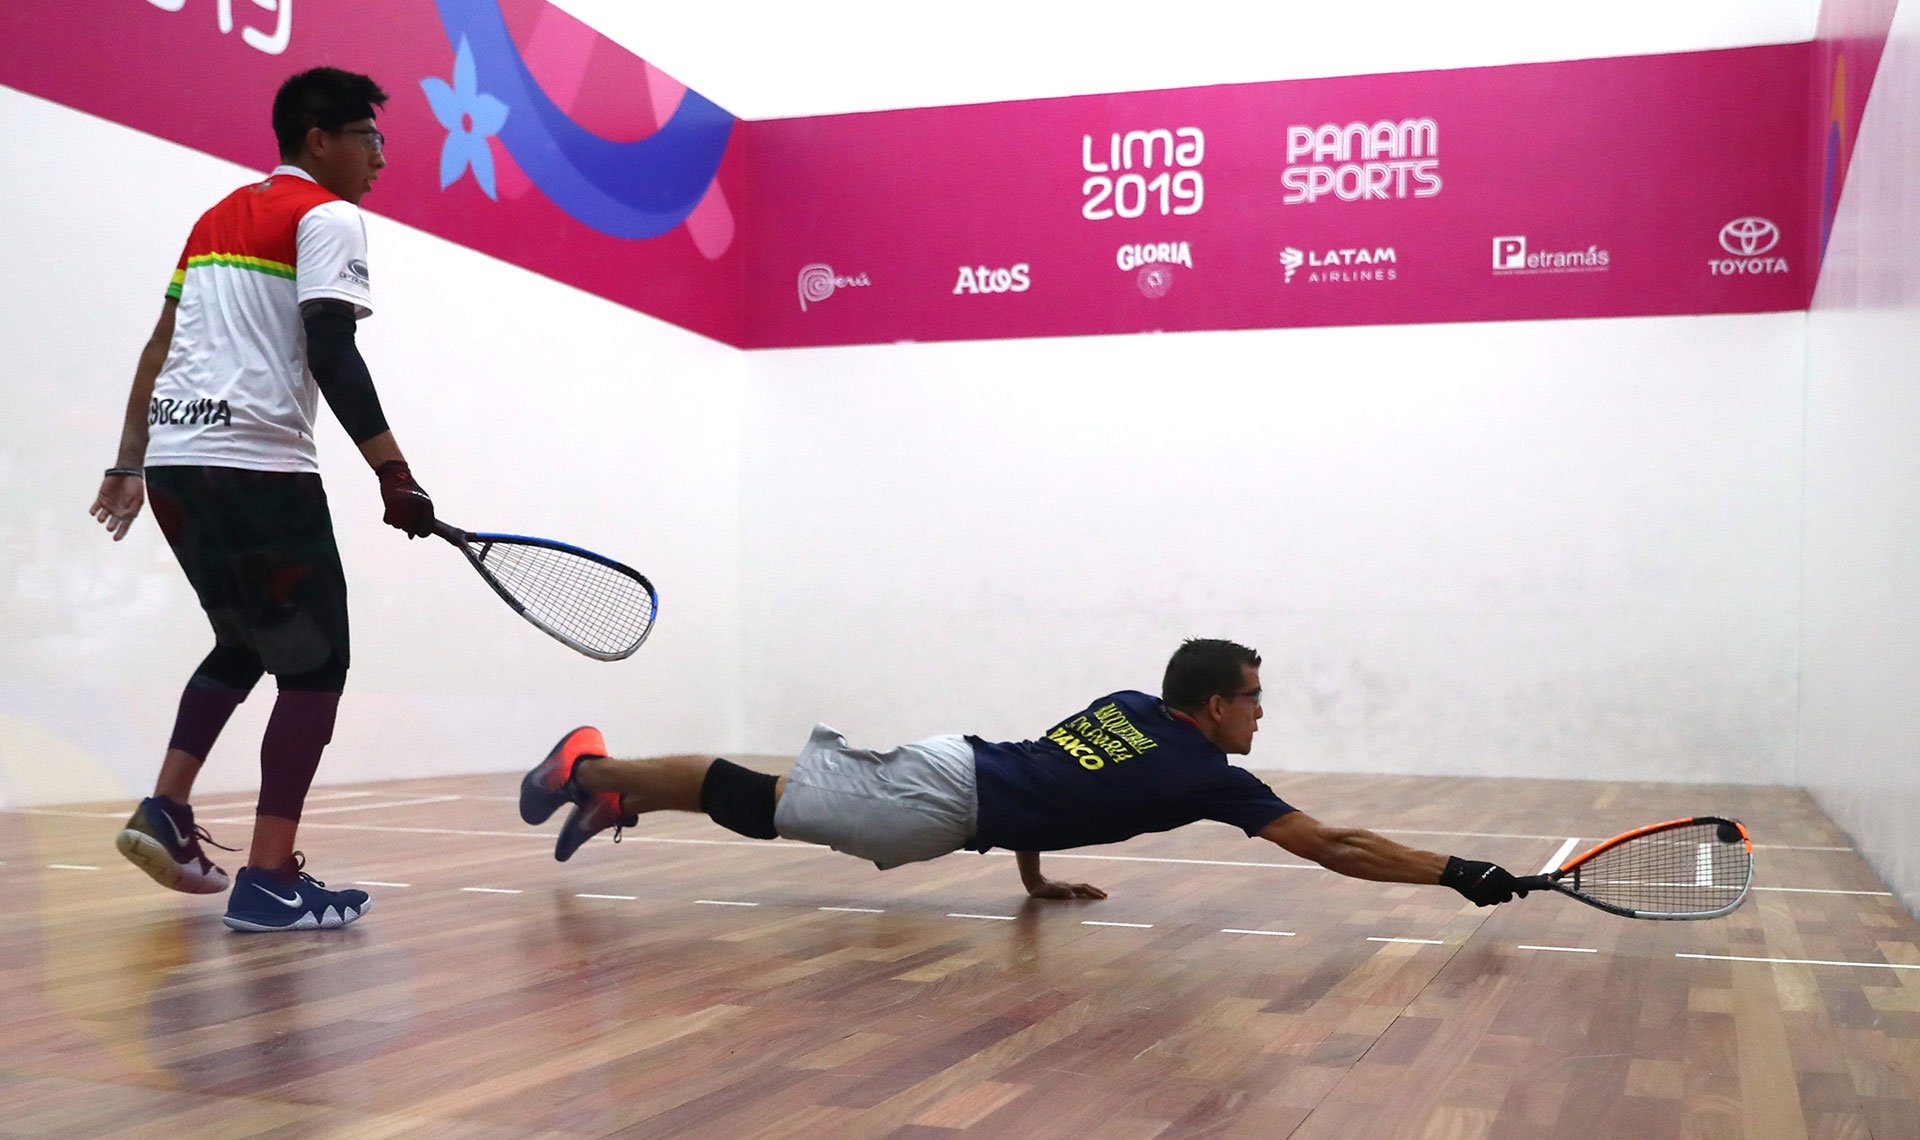 XVIII Pan American Games - Lima 2019 - Racquetball - Men's Team Gold Medal - Racquetball Courts, Lima, Peru - August 10, 2019. Colombia's Sebastian Franco and Bolivia's Carlos Keller in action. REUTERS/Pilar Olivares